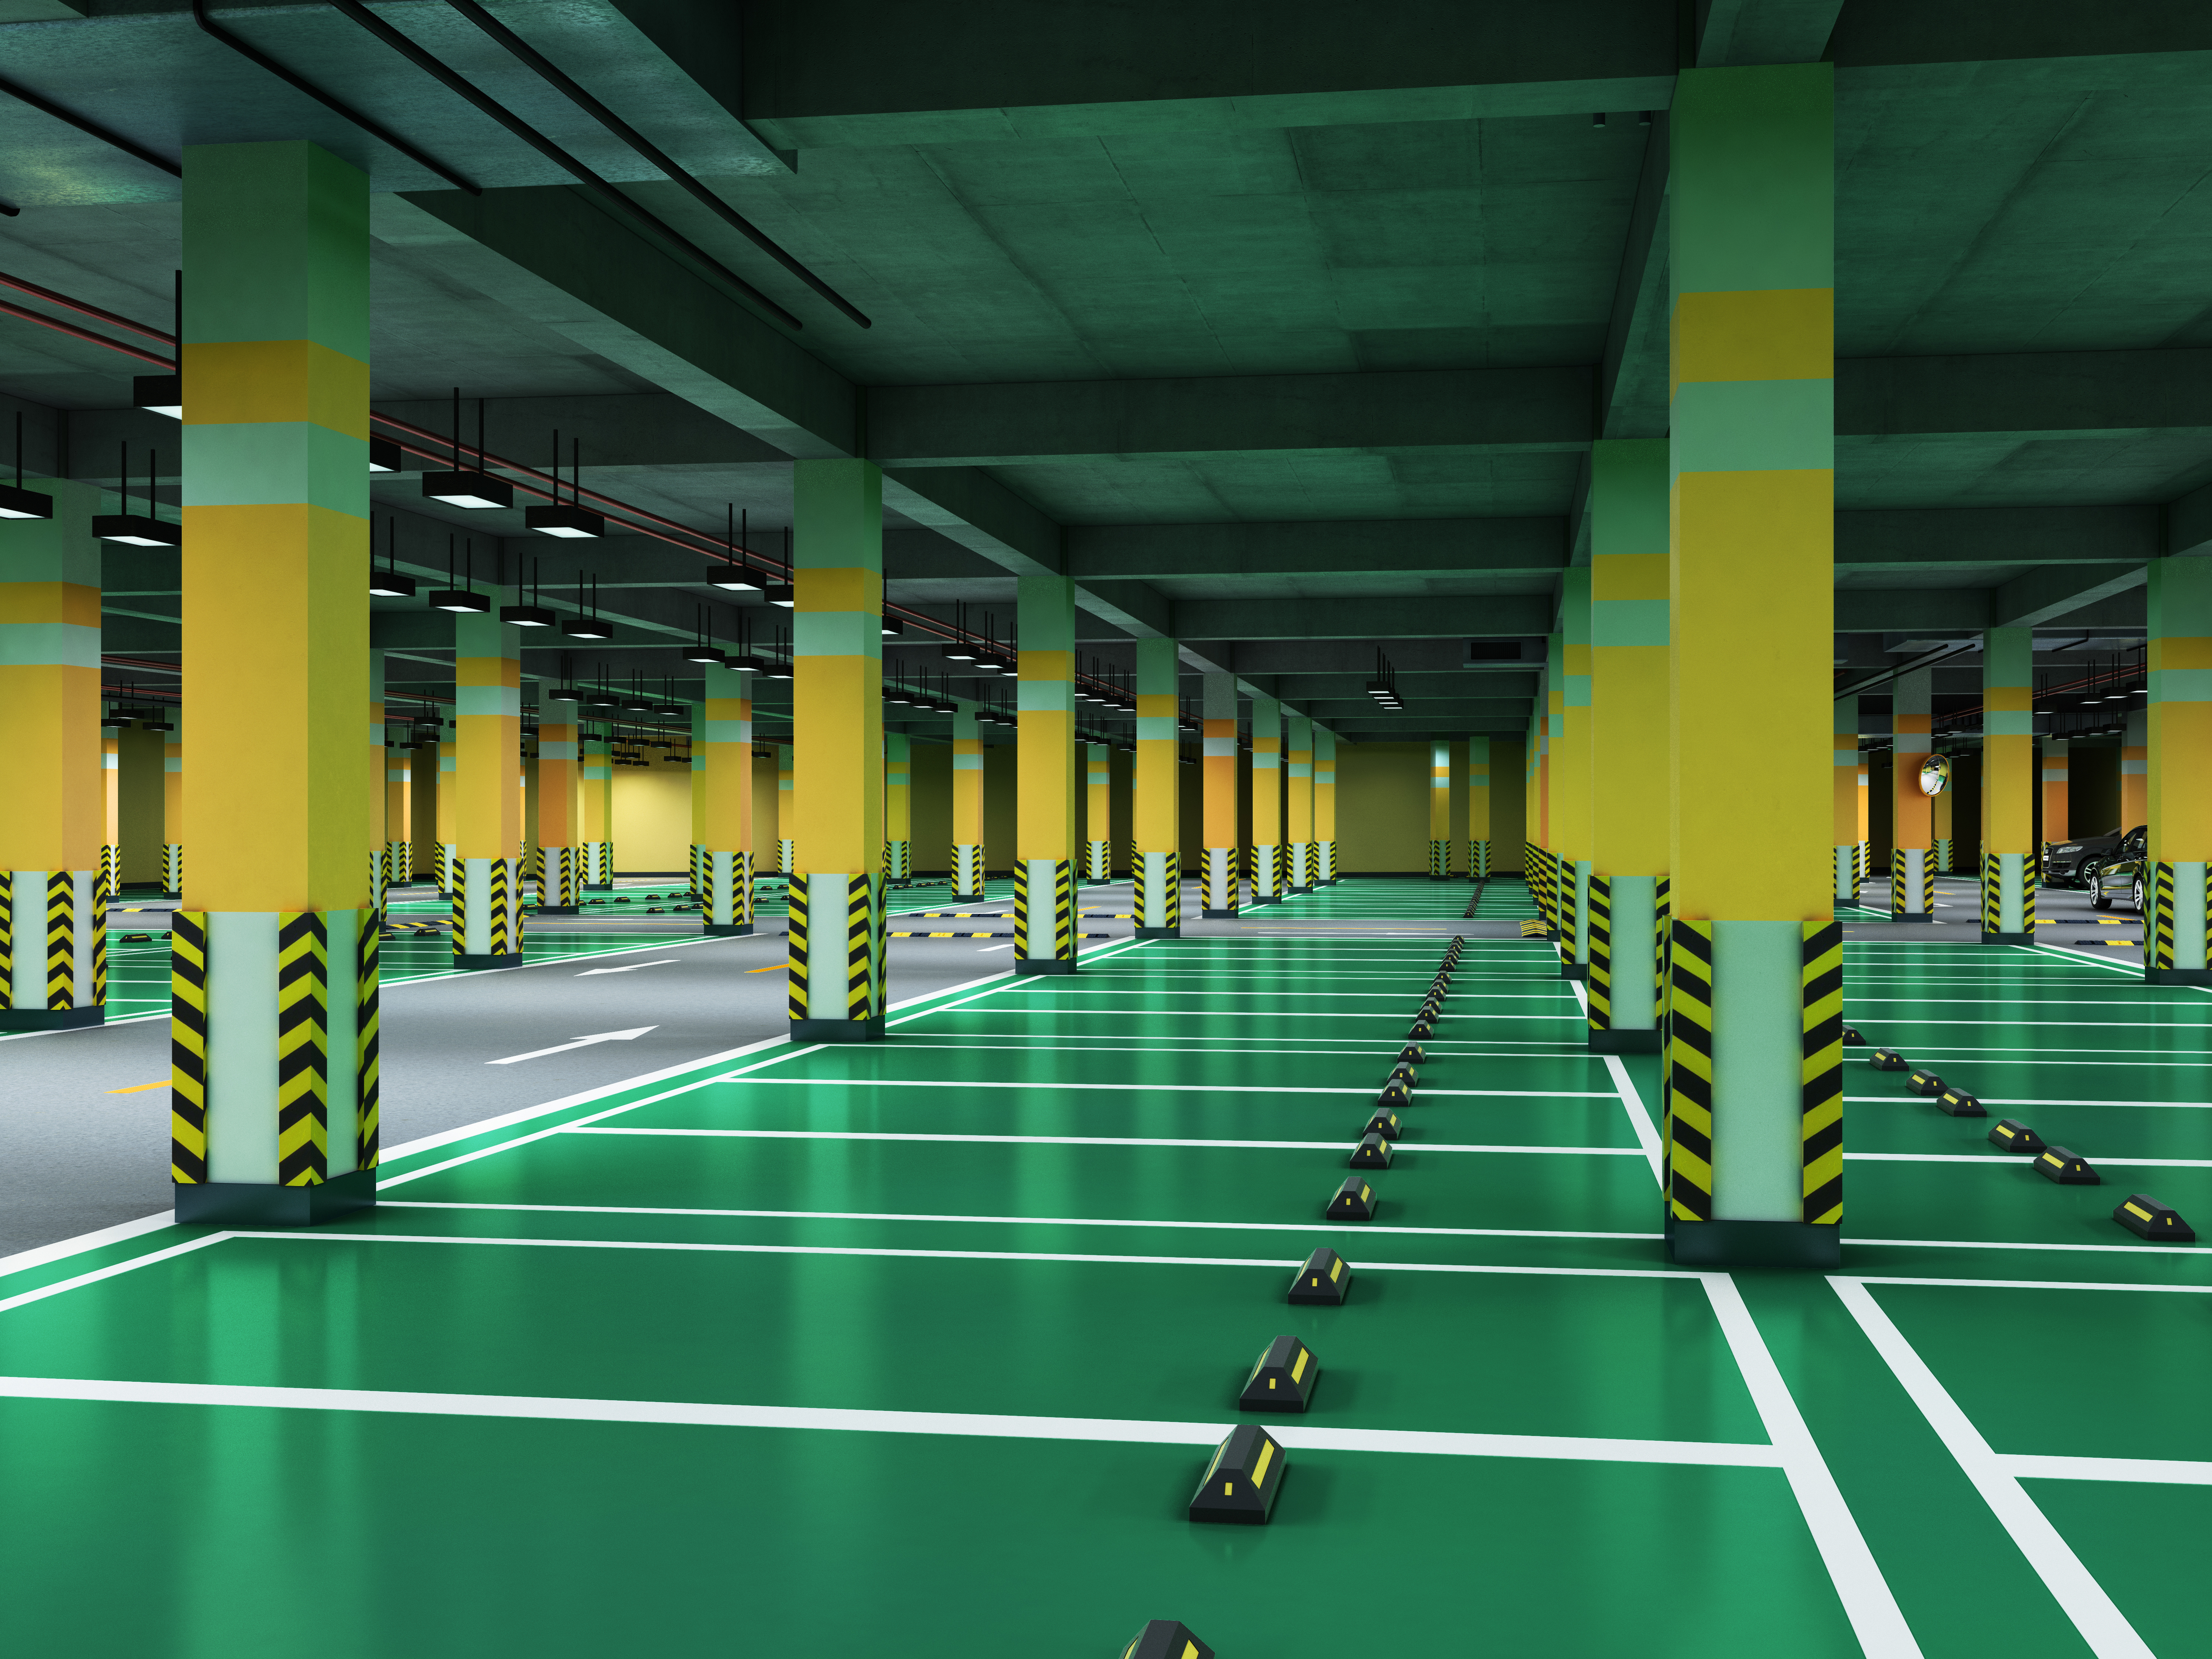 vebrodeck car park deck waterproofing and wearing systems